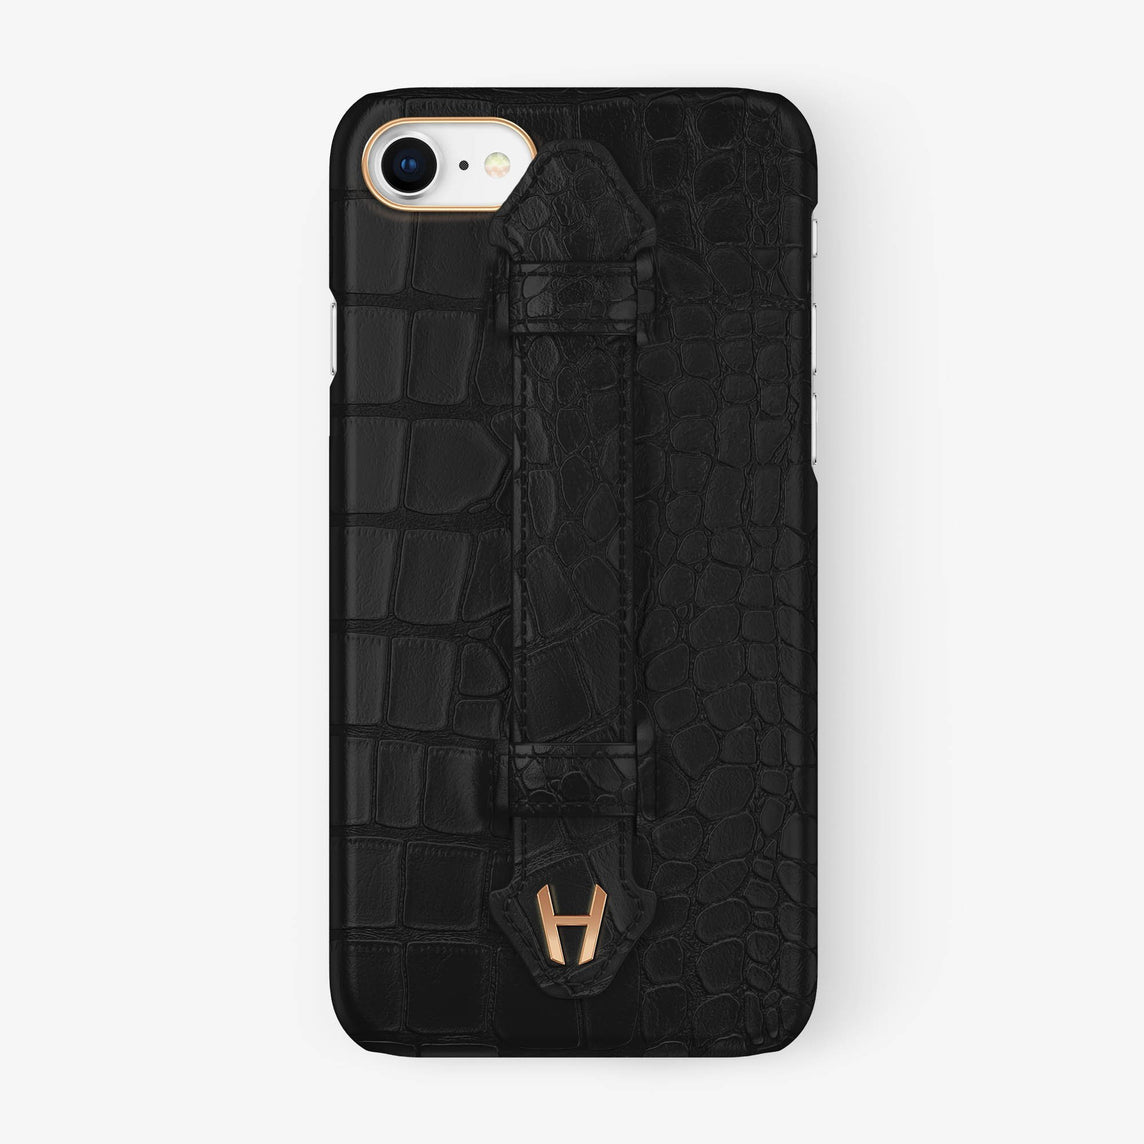 Alligator [iPhone Finger Case] [model:iphone-7-8-case] [colour:phantom-black] [finishing:rose-gold] - Hadoro